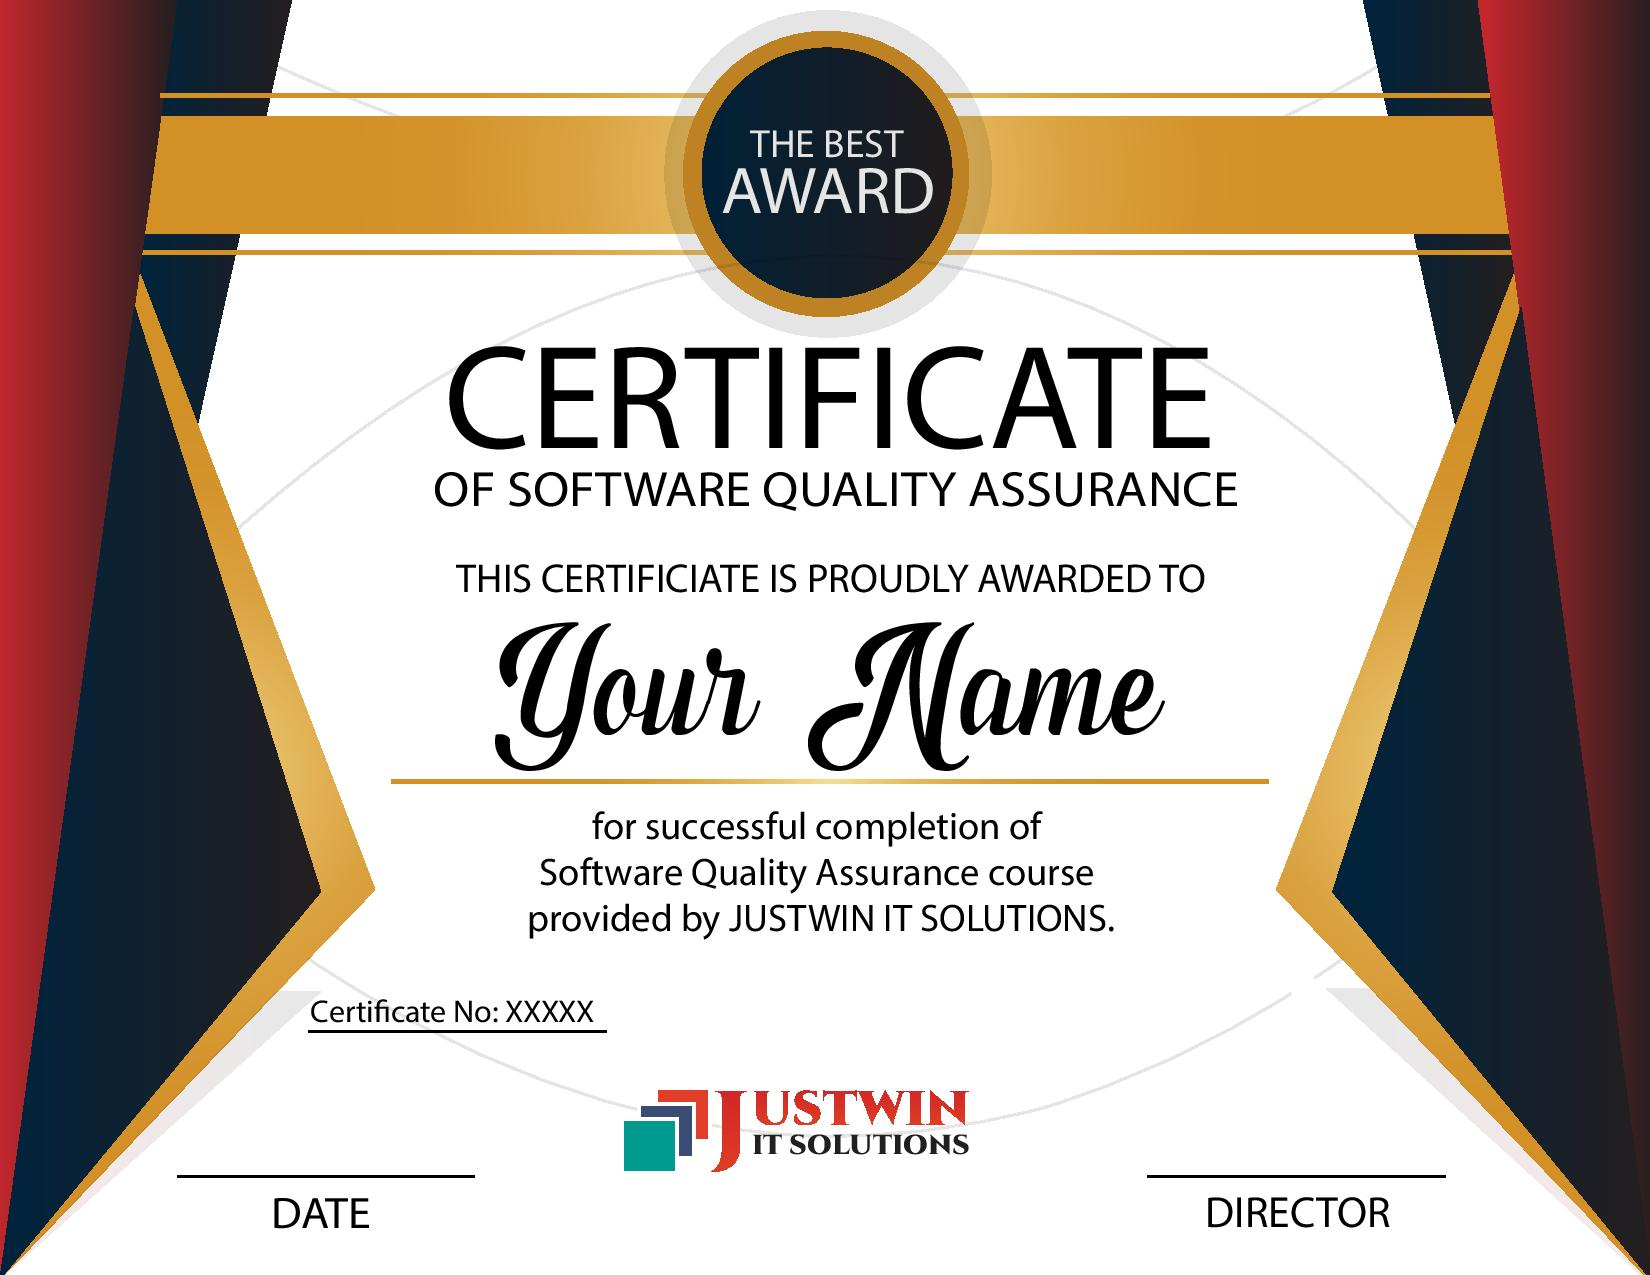 Ffa certificate template gallery templates example free download certificate template software images templates example free download ffa certificate template image collections templates example certificate yelopaper Images